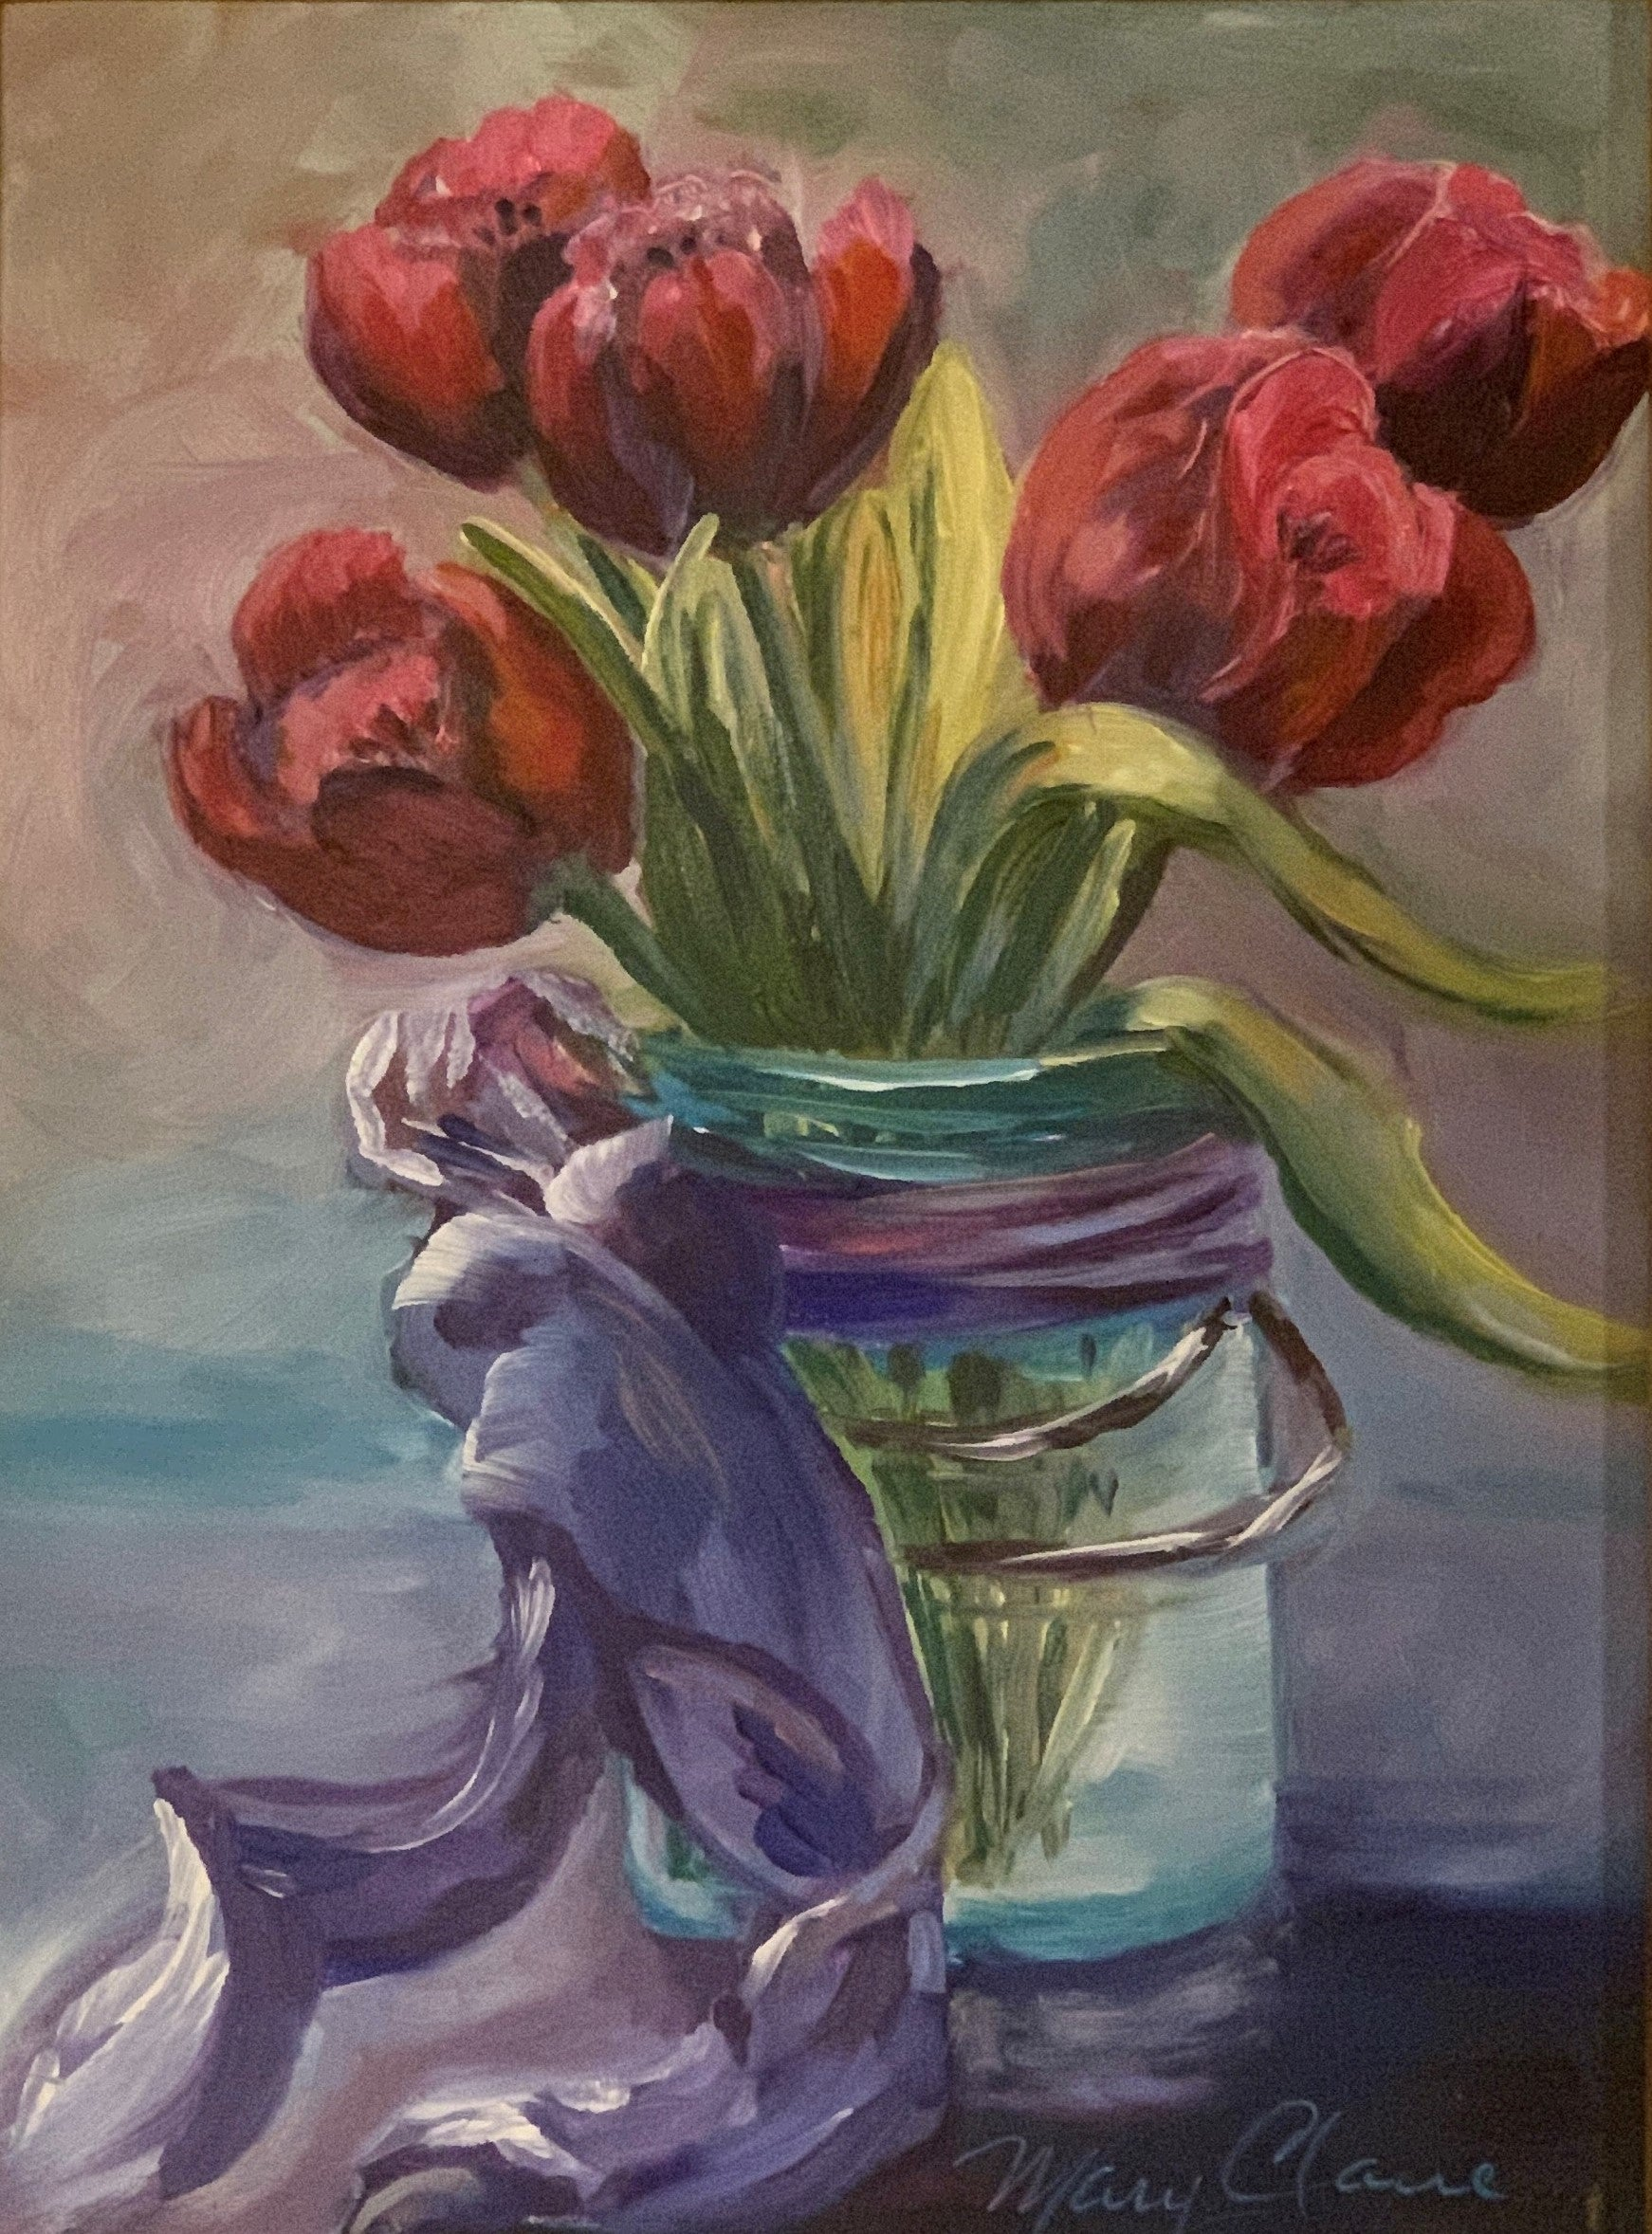 Mary Claire Coster - Tulips & Bows